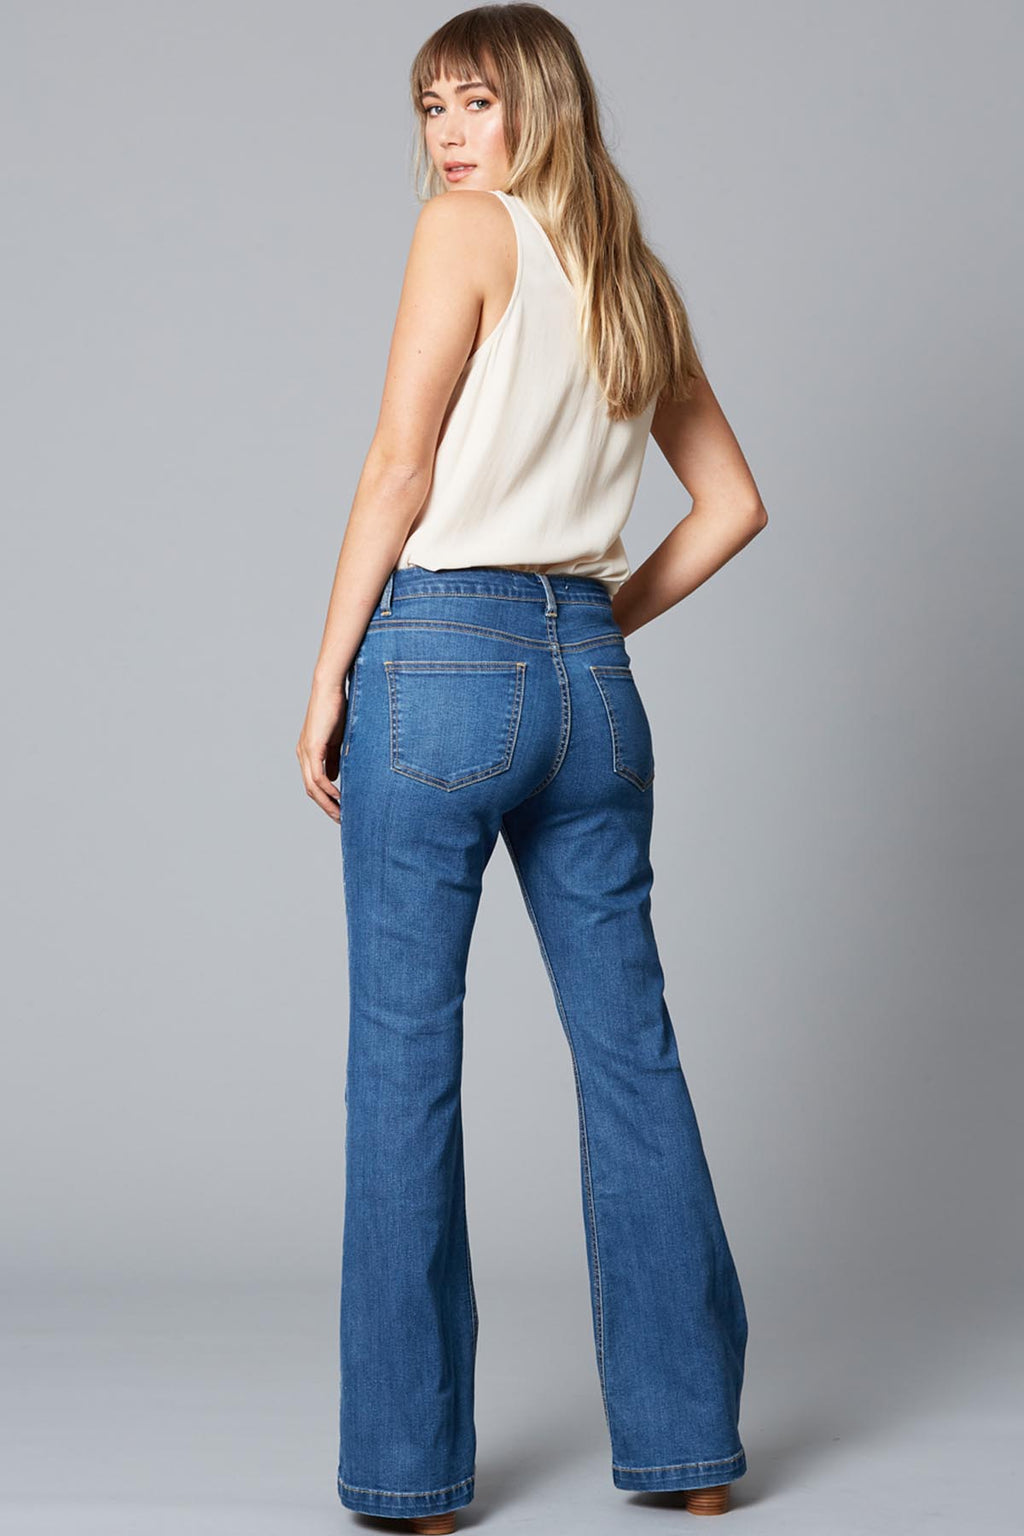 Good Vibe Jean - Denim Blue - The Bohemian Corner